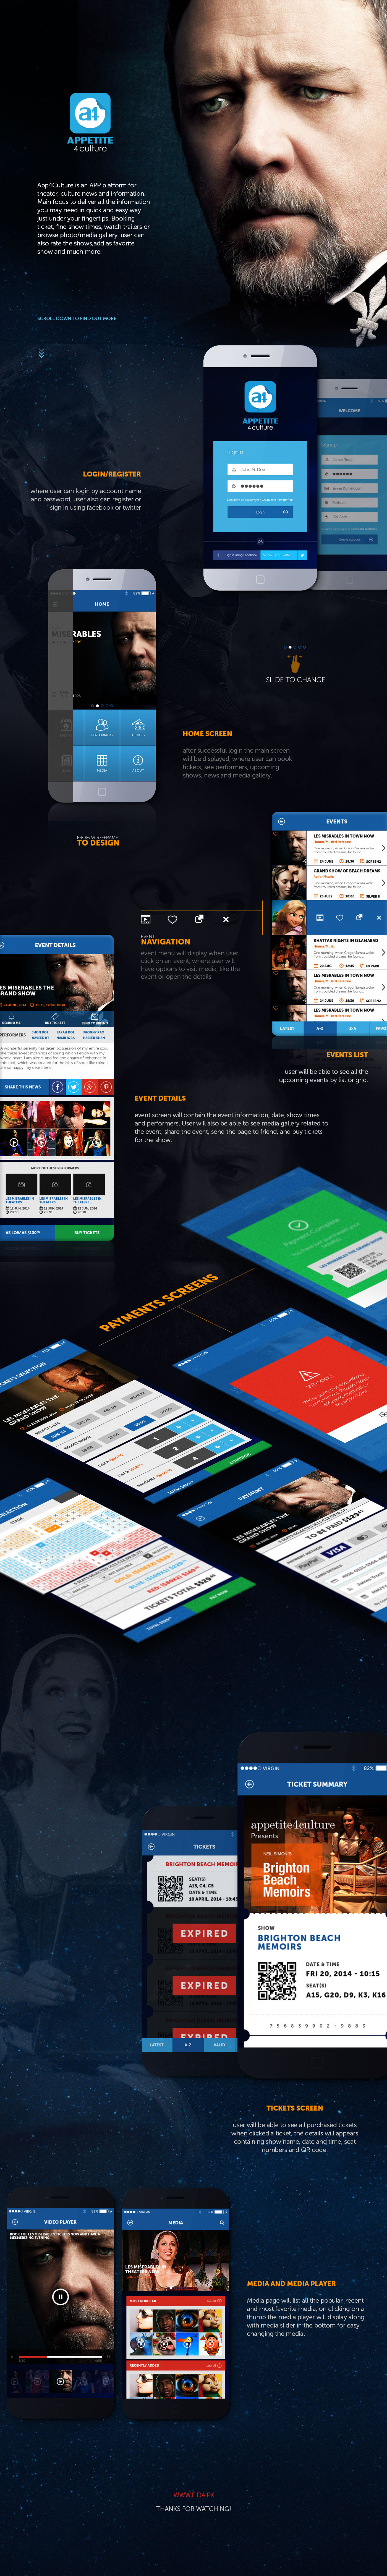 app Appdesign movie ticket Booking player media gallery Events news application andriod ios ios7 iphone